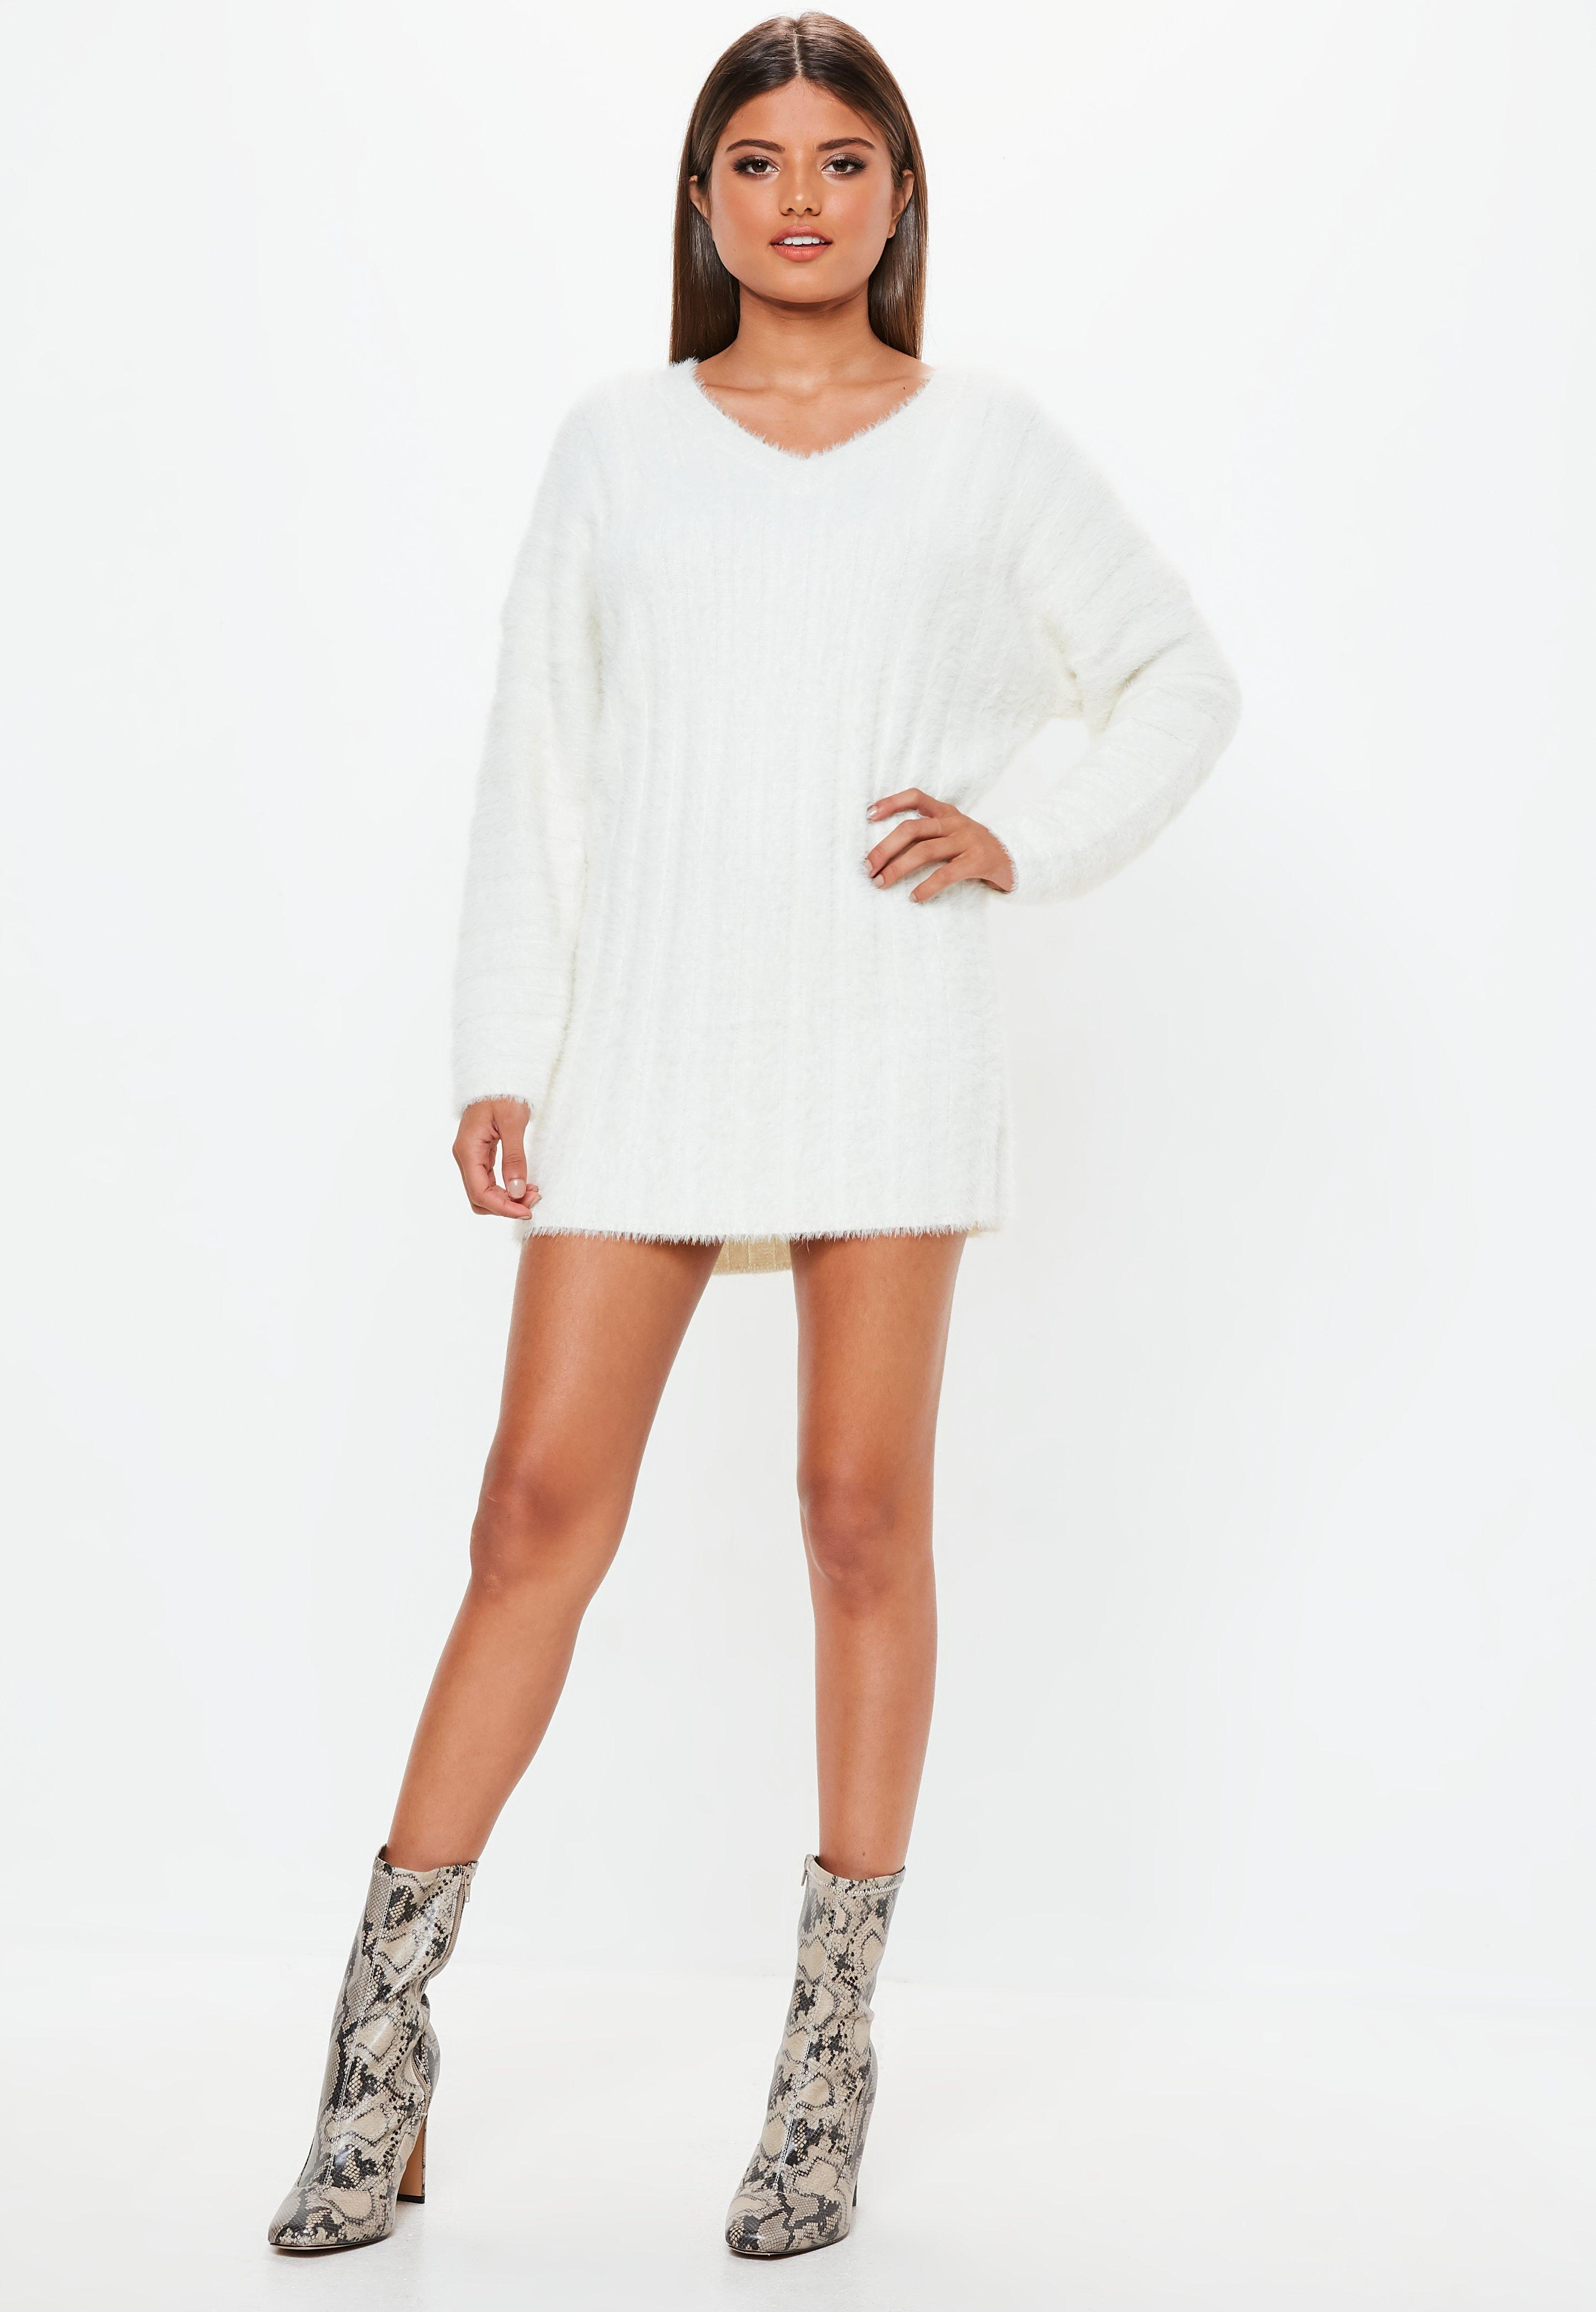 92968914c65f4 Missguided - White Fluffy Ribbed Knitted Jumper Dress - Lyst. View  fullscreen